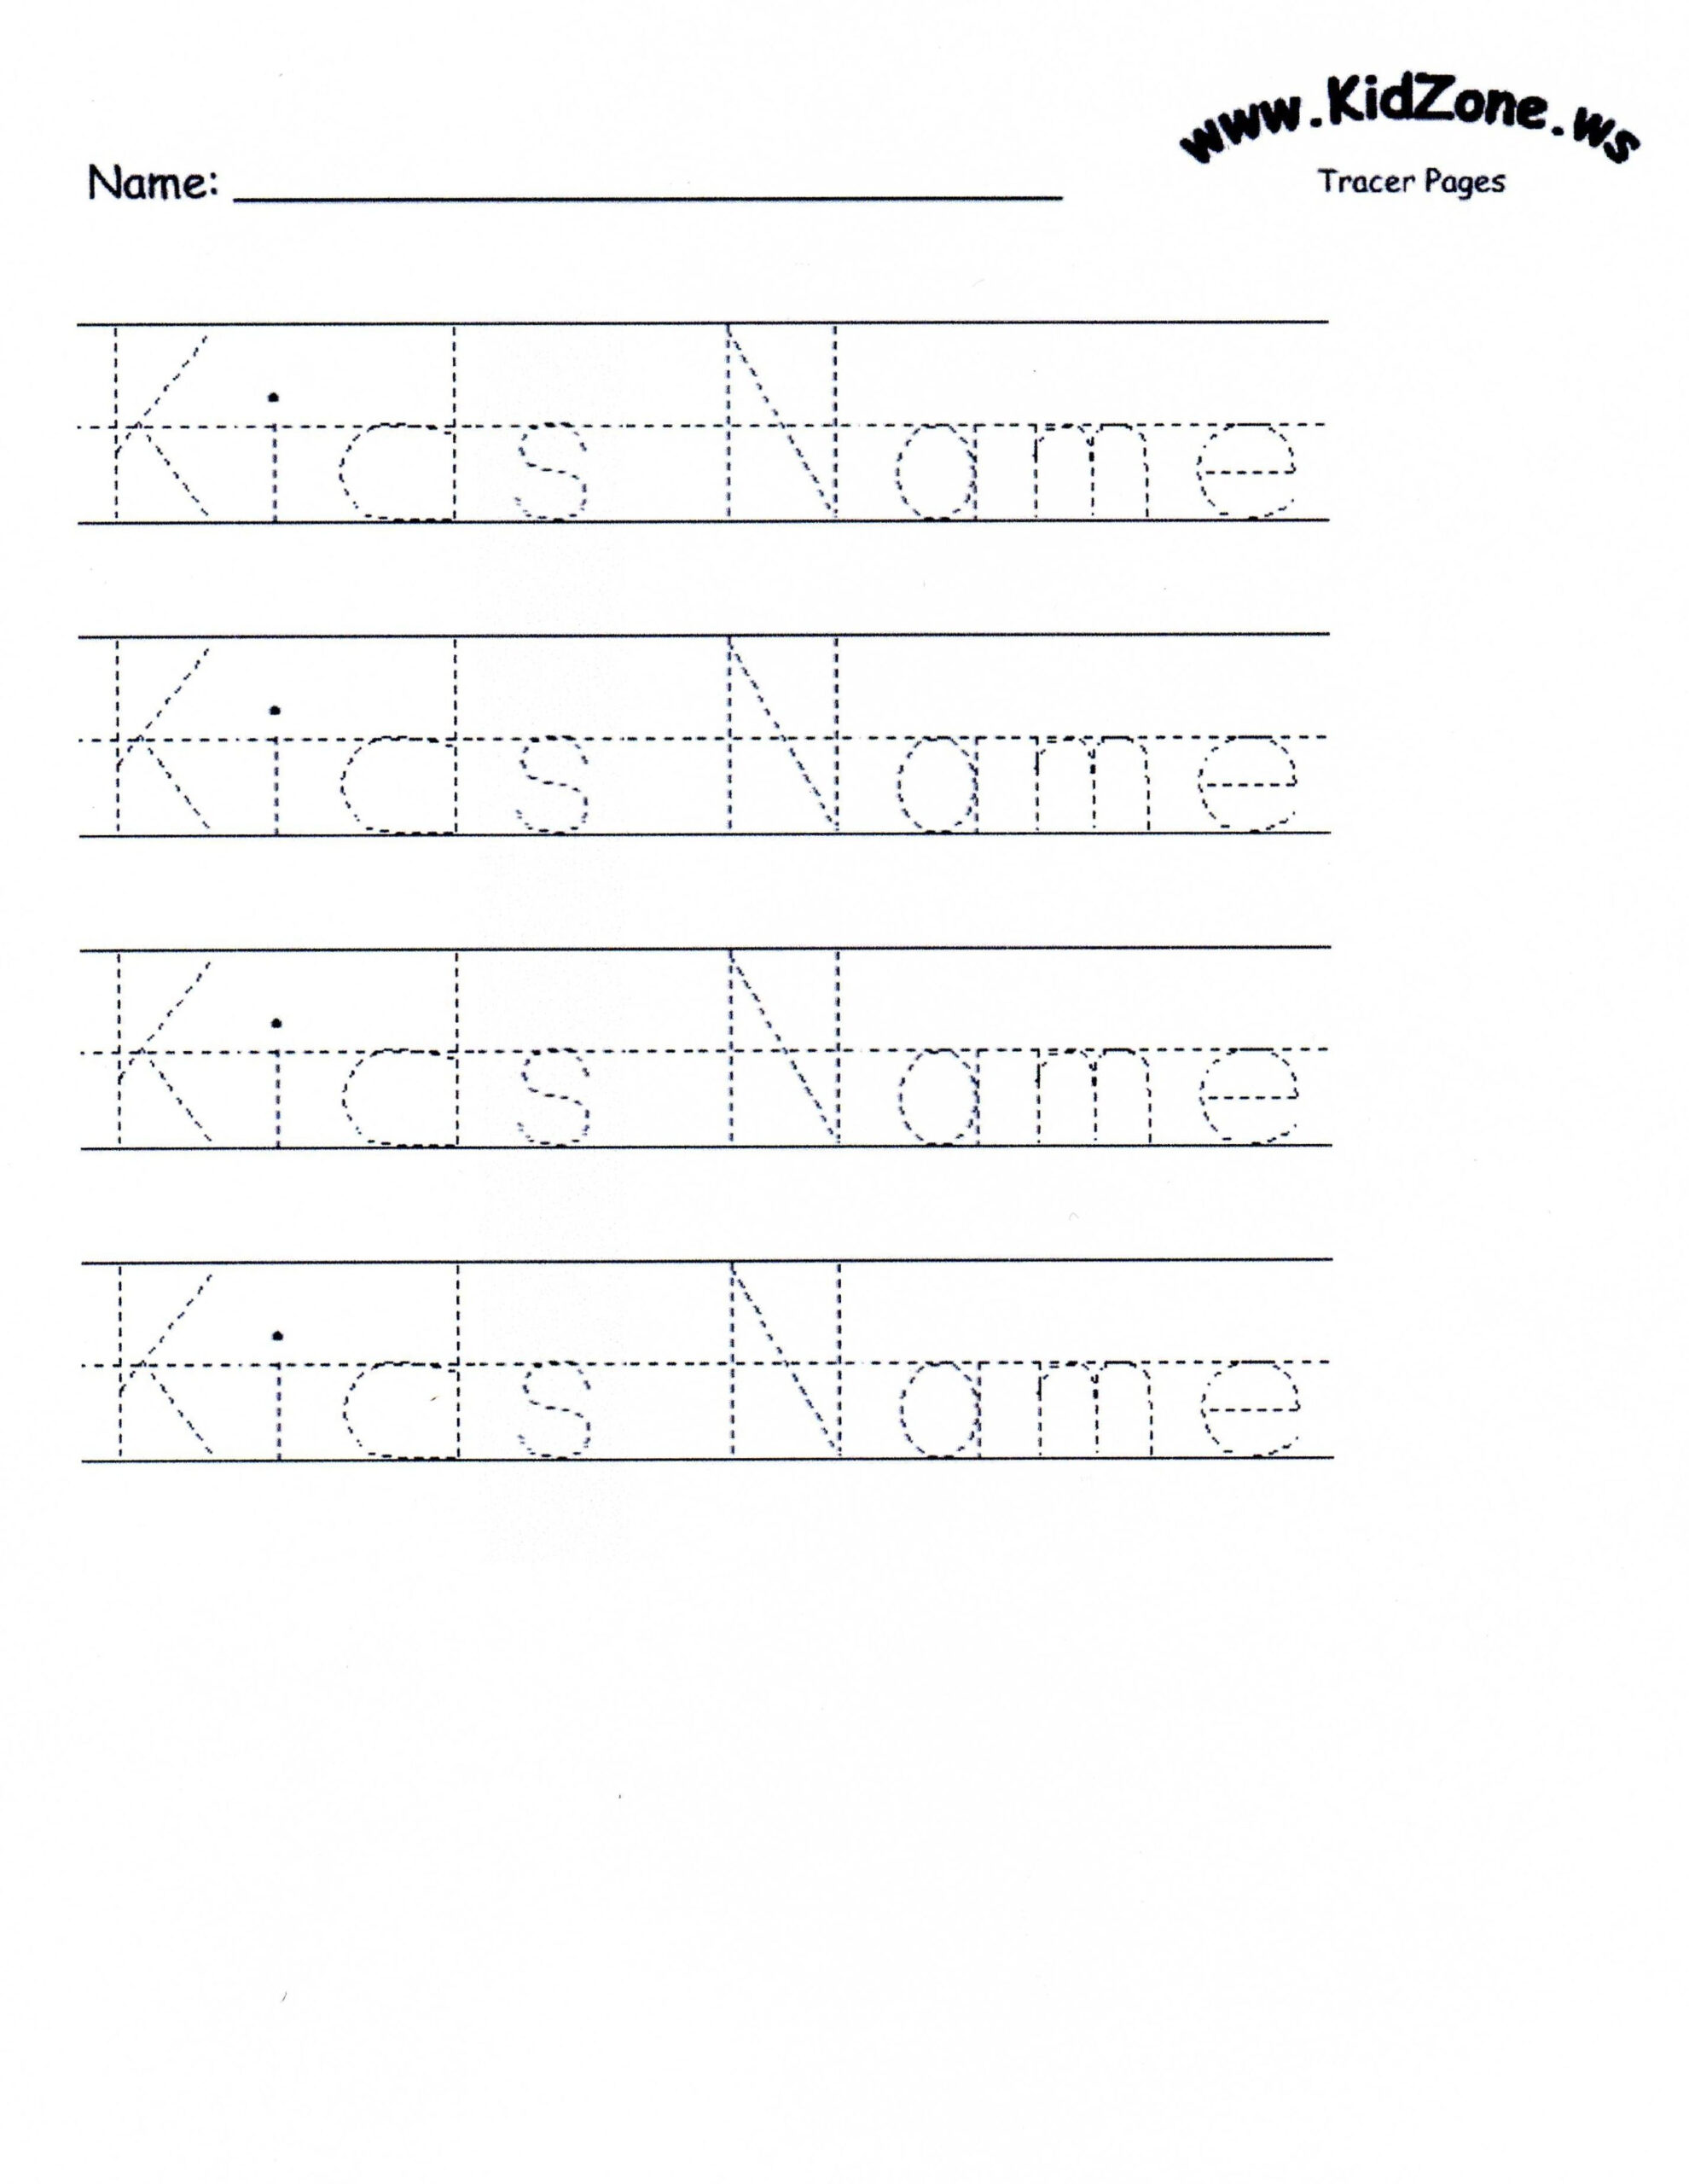 Customizable Printable Letter Pages | Name Tracing pertaining to Name Tracing Worksheets